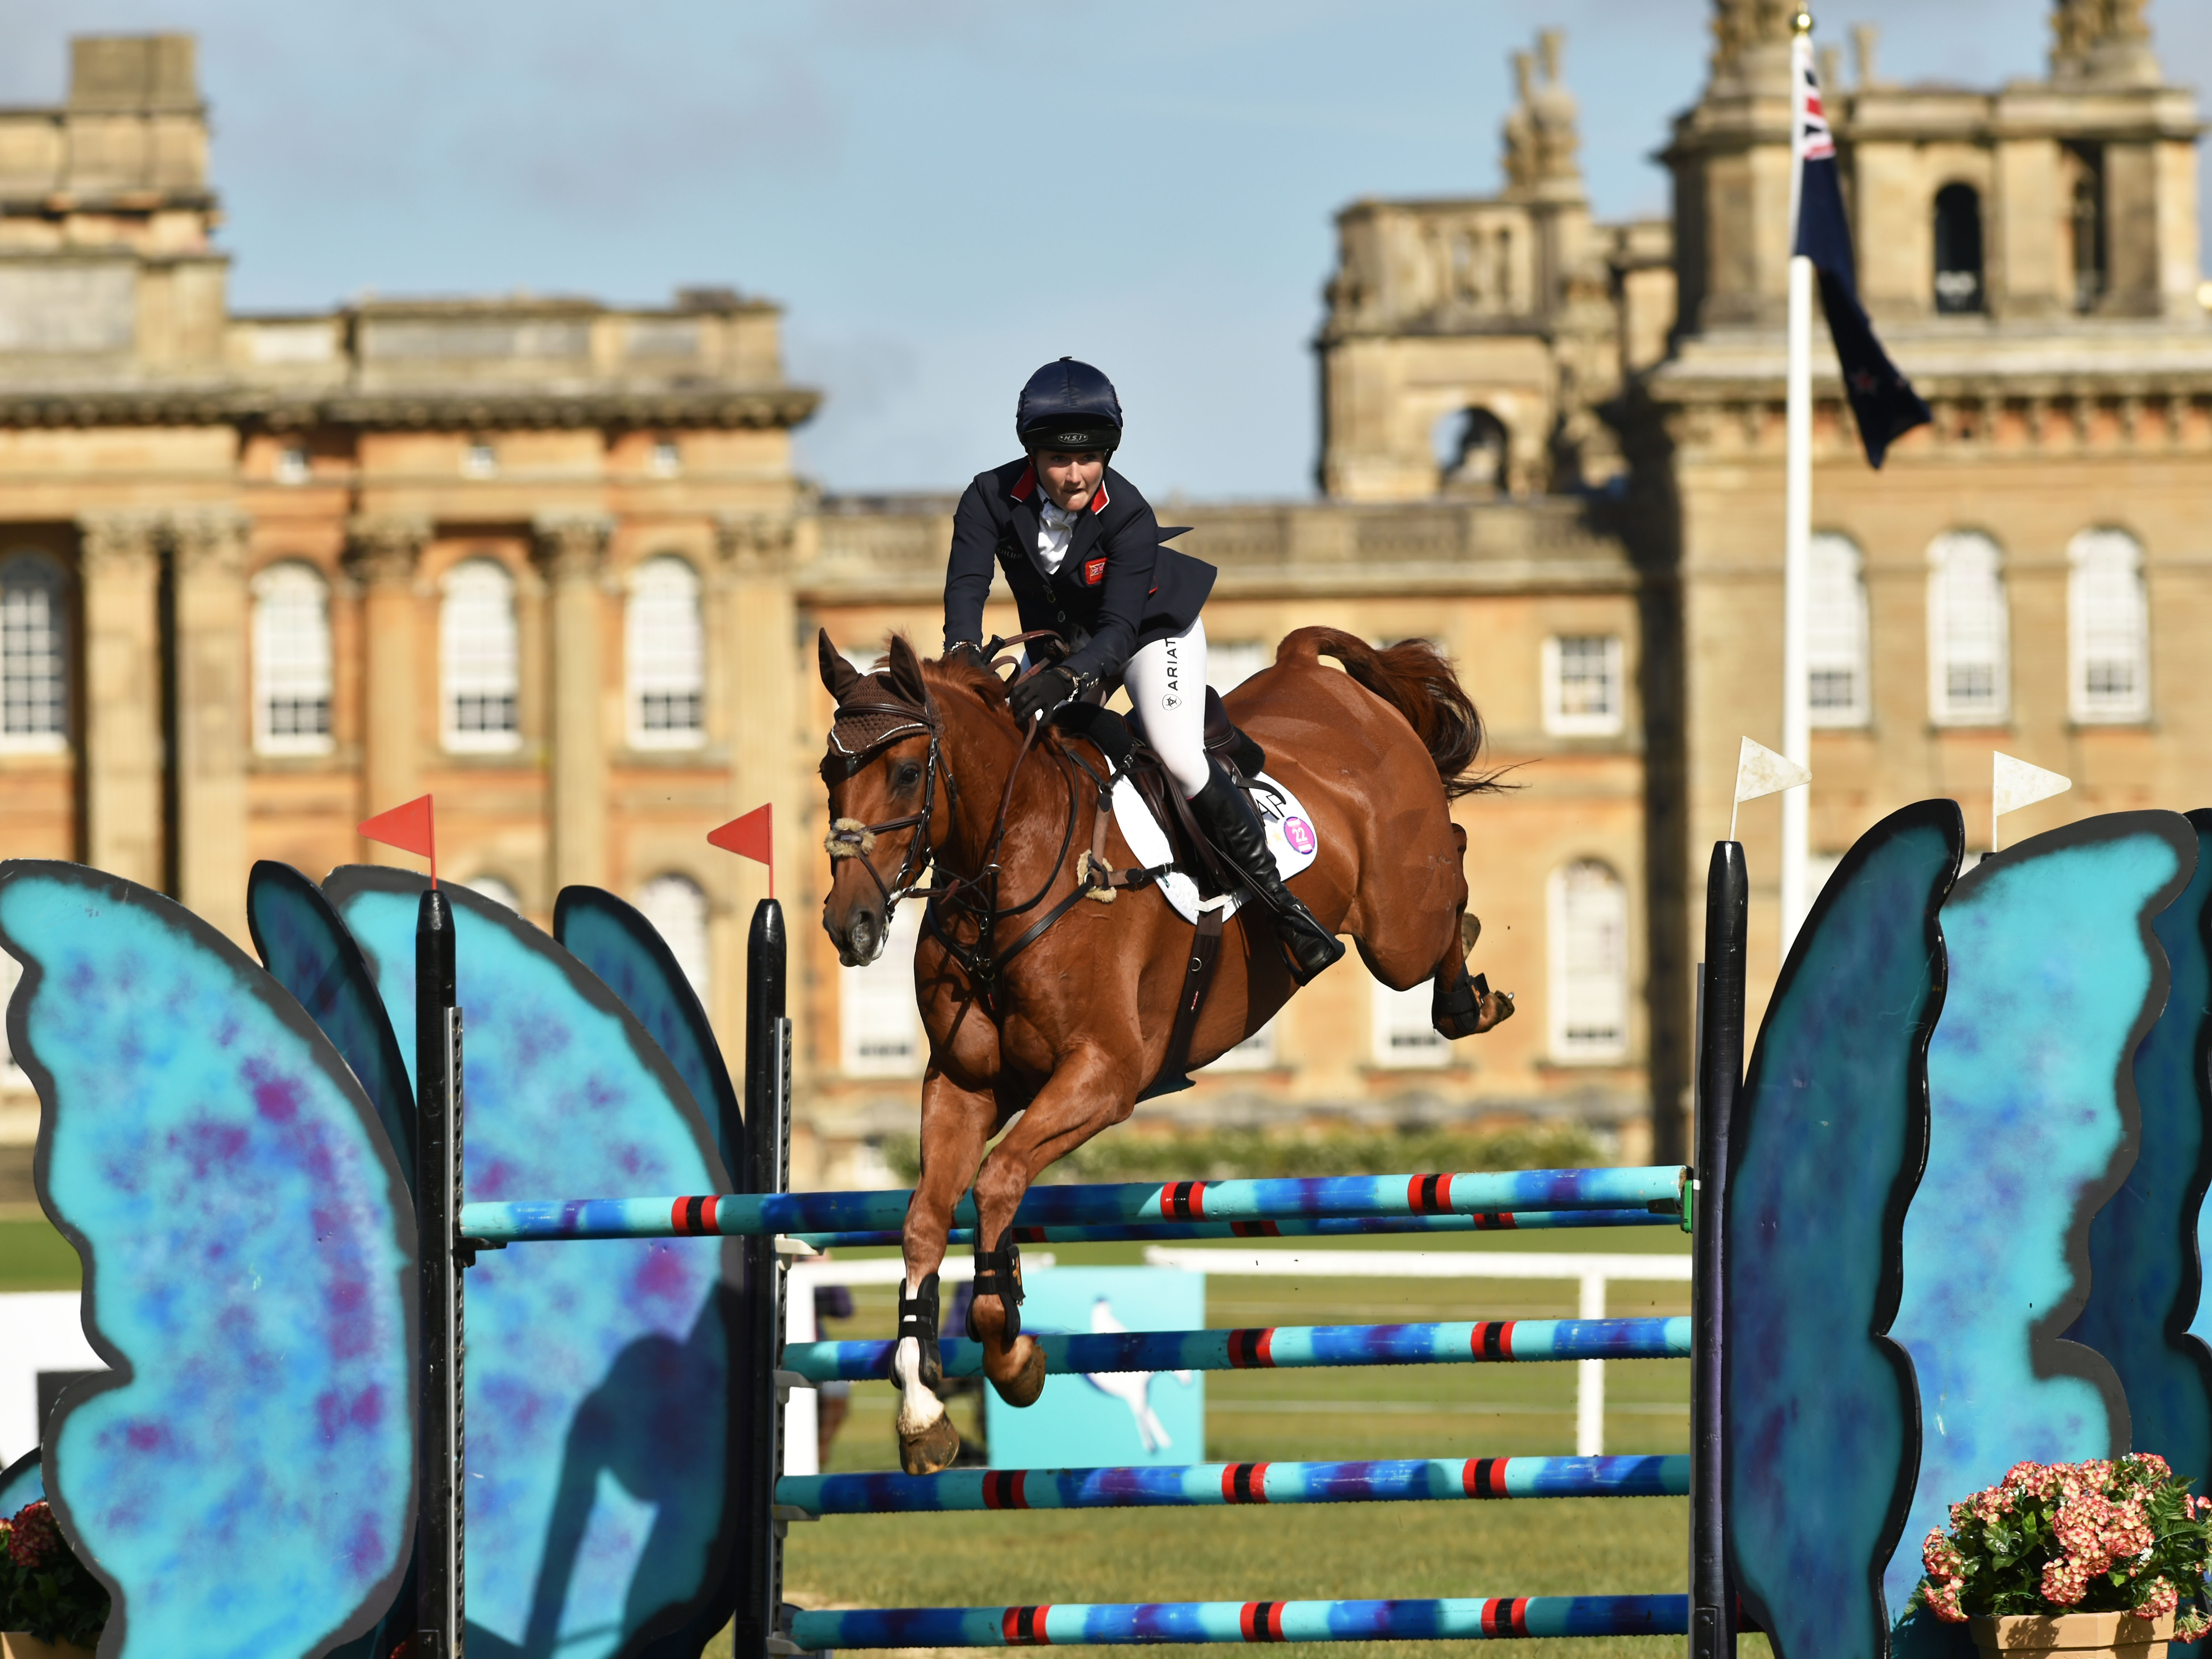 Laura Collett and Grand Manoeuvre competing at Blenheim Palace International Horse Trials in 2016 © Blenheim Palace International Horse Trials